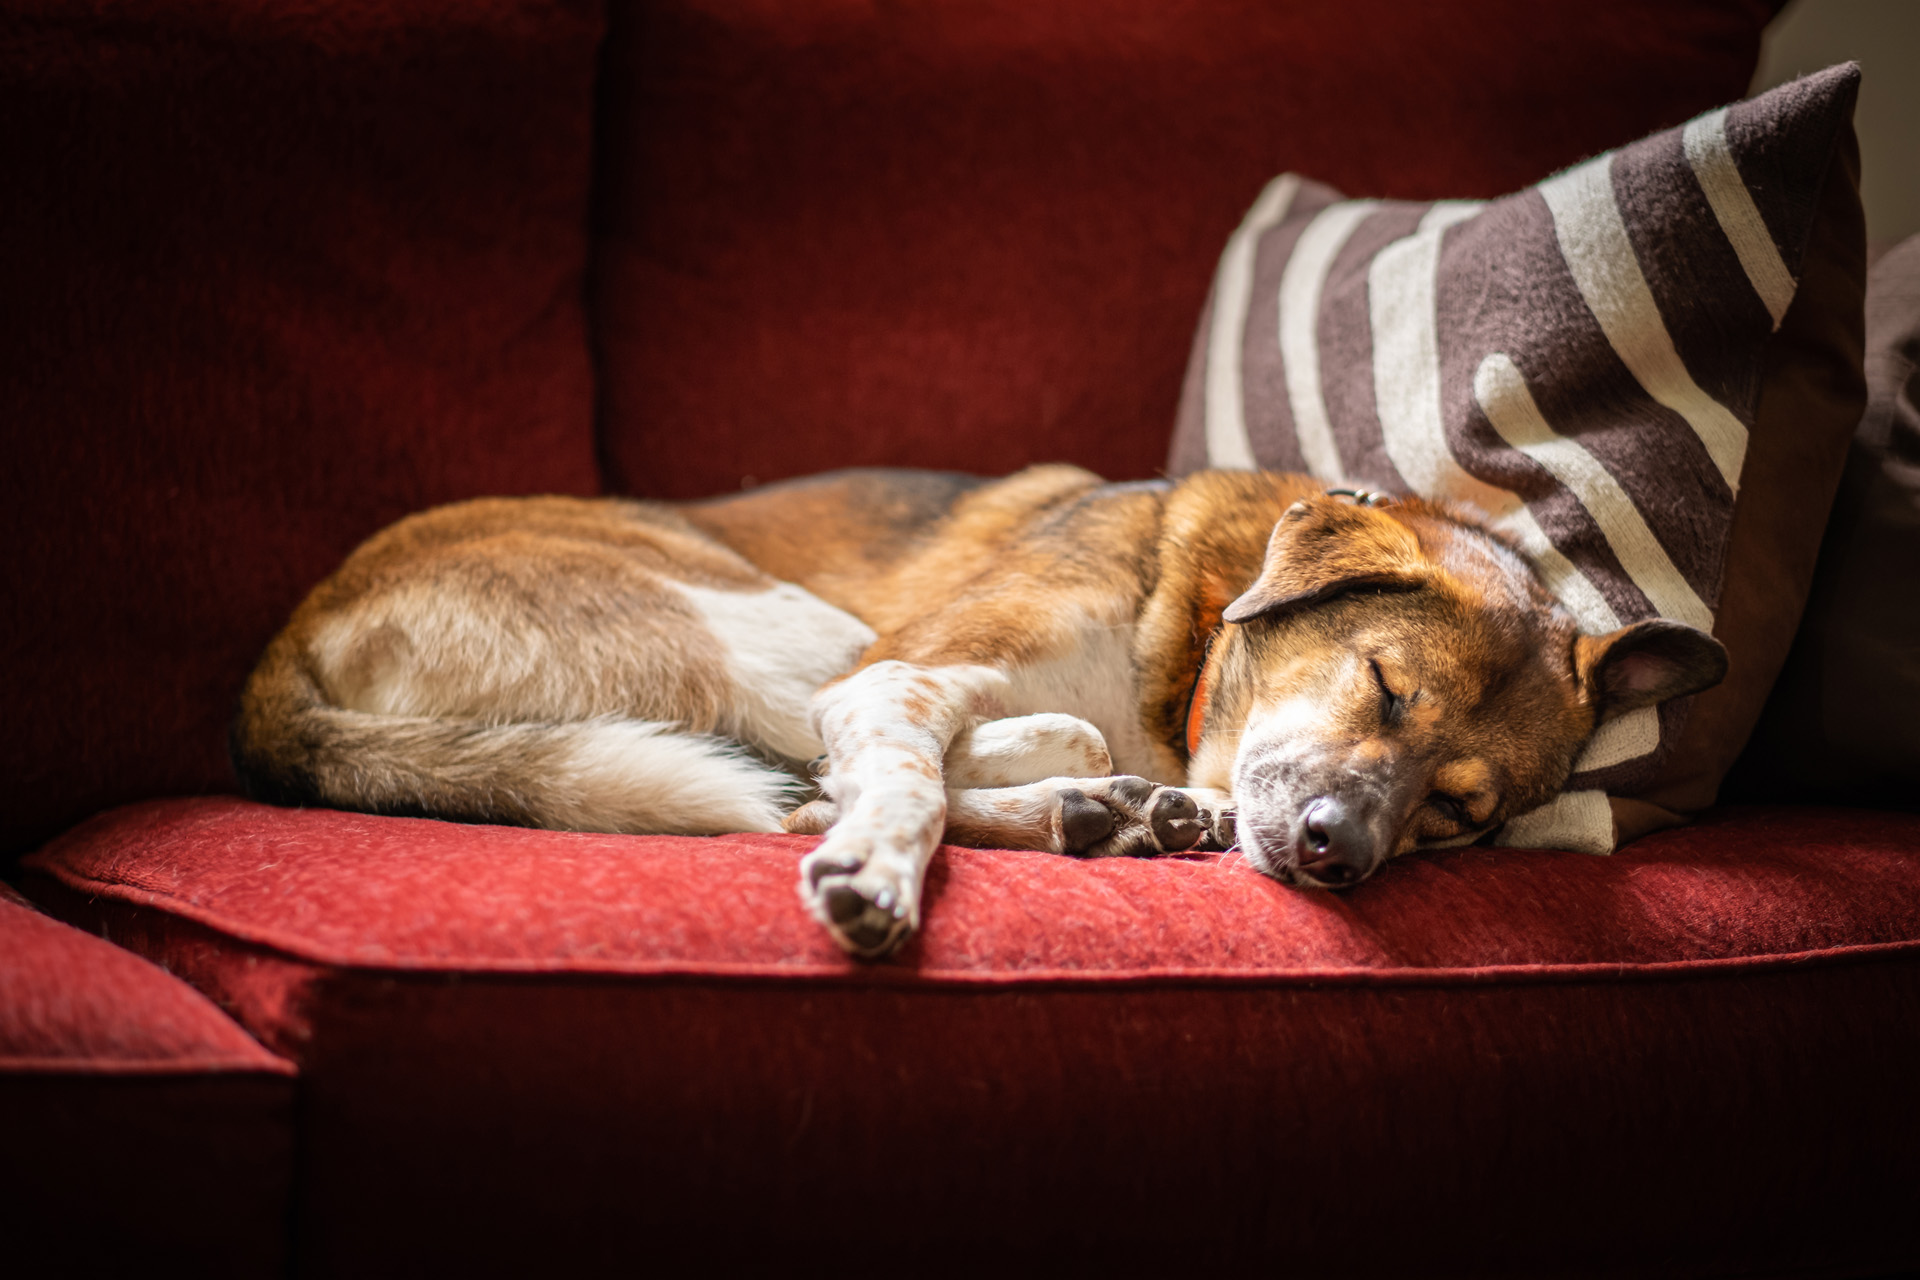 Senior dog sleeping on the couch